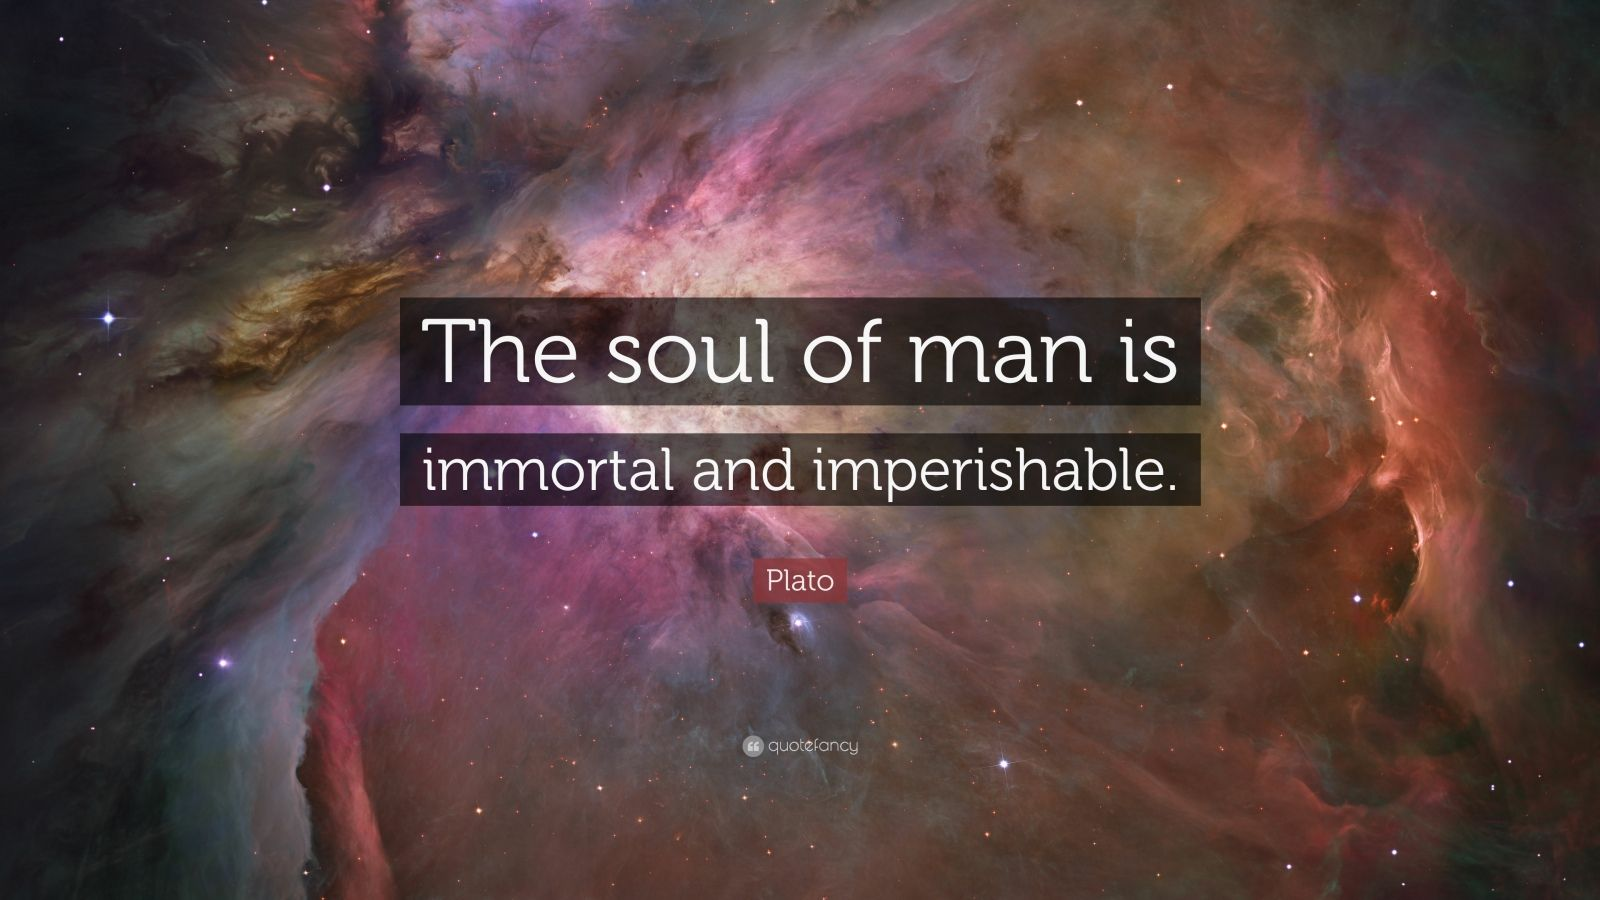 the immortality of the soul according to plato Quiz & worksheet - socrates, plato & augustine on  plato and augustine all had views on the immortality of the soul  the immortal soul: ideas of socrates, plato.